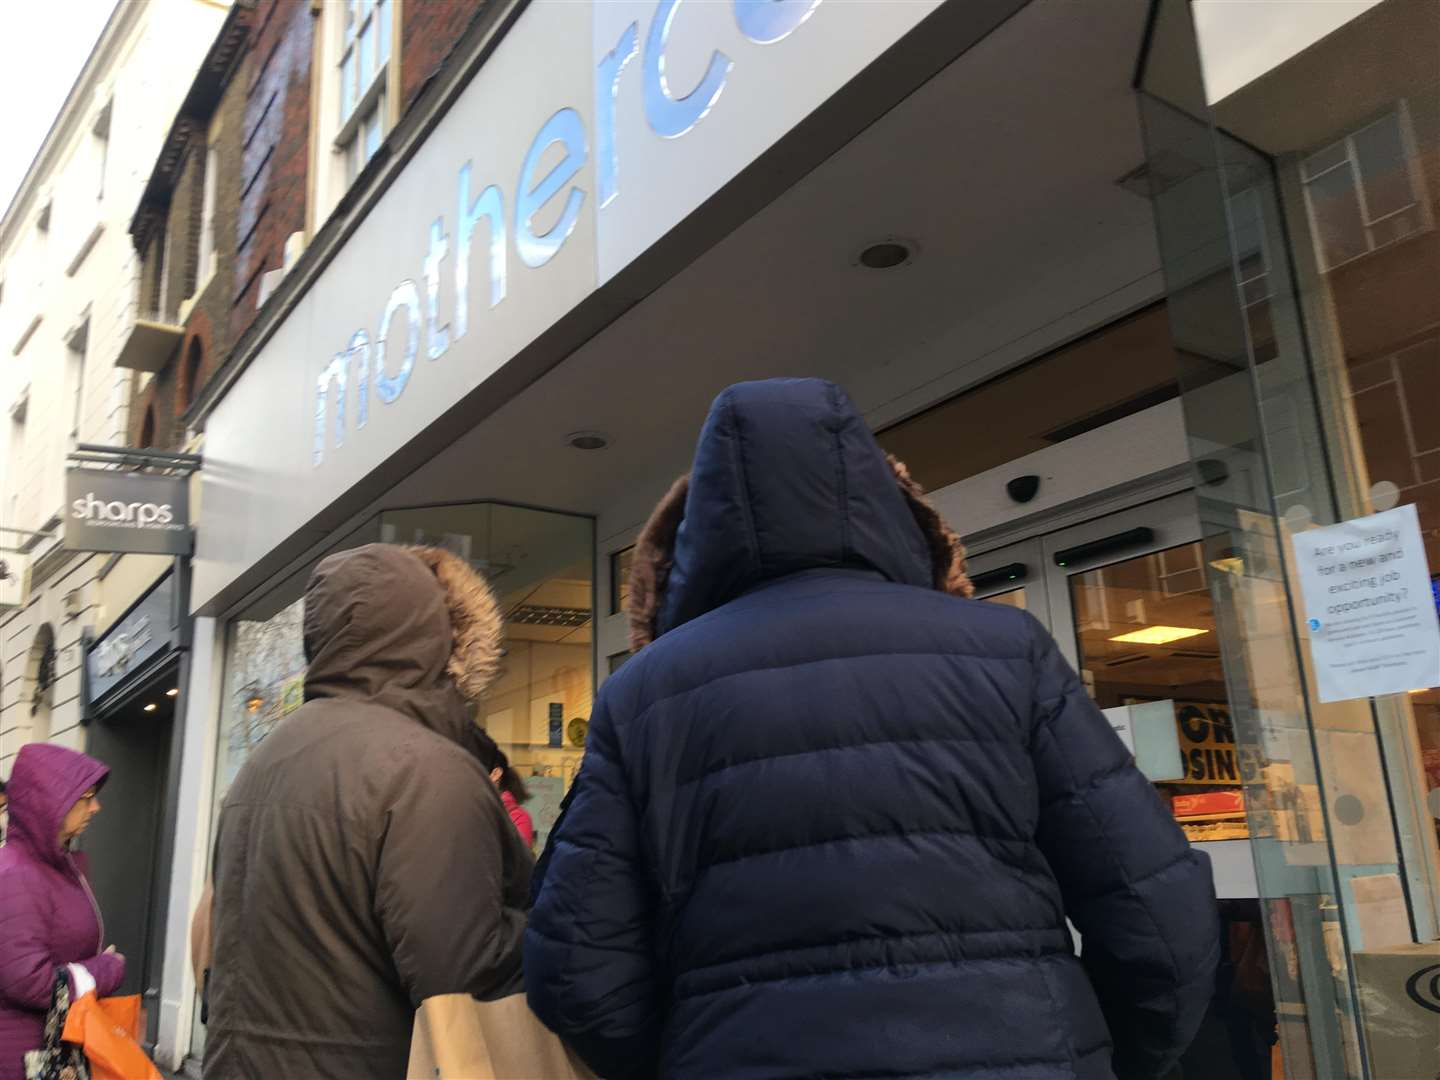 Shoppers gathered outside Mothercare in Week Street, Maidstone looking for a bargain